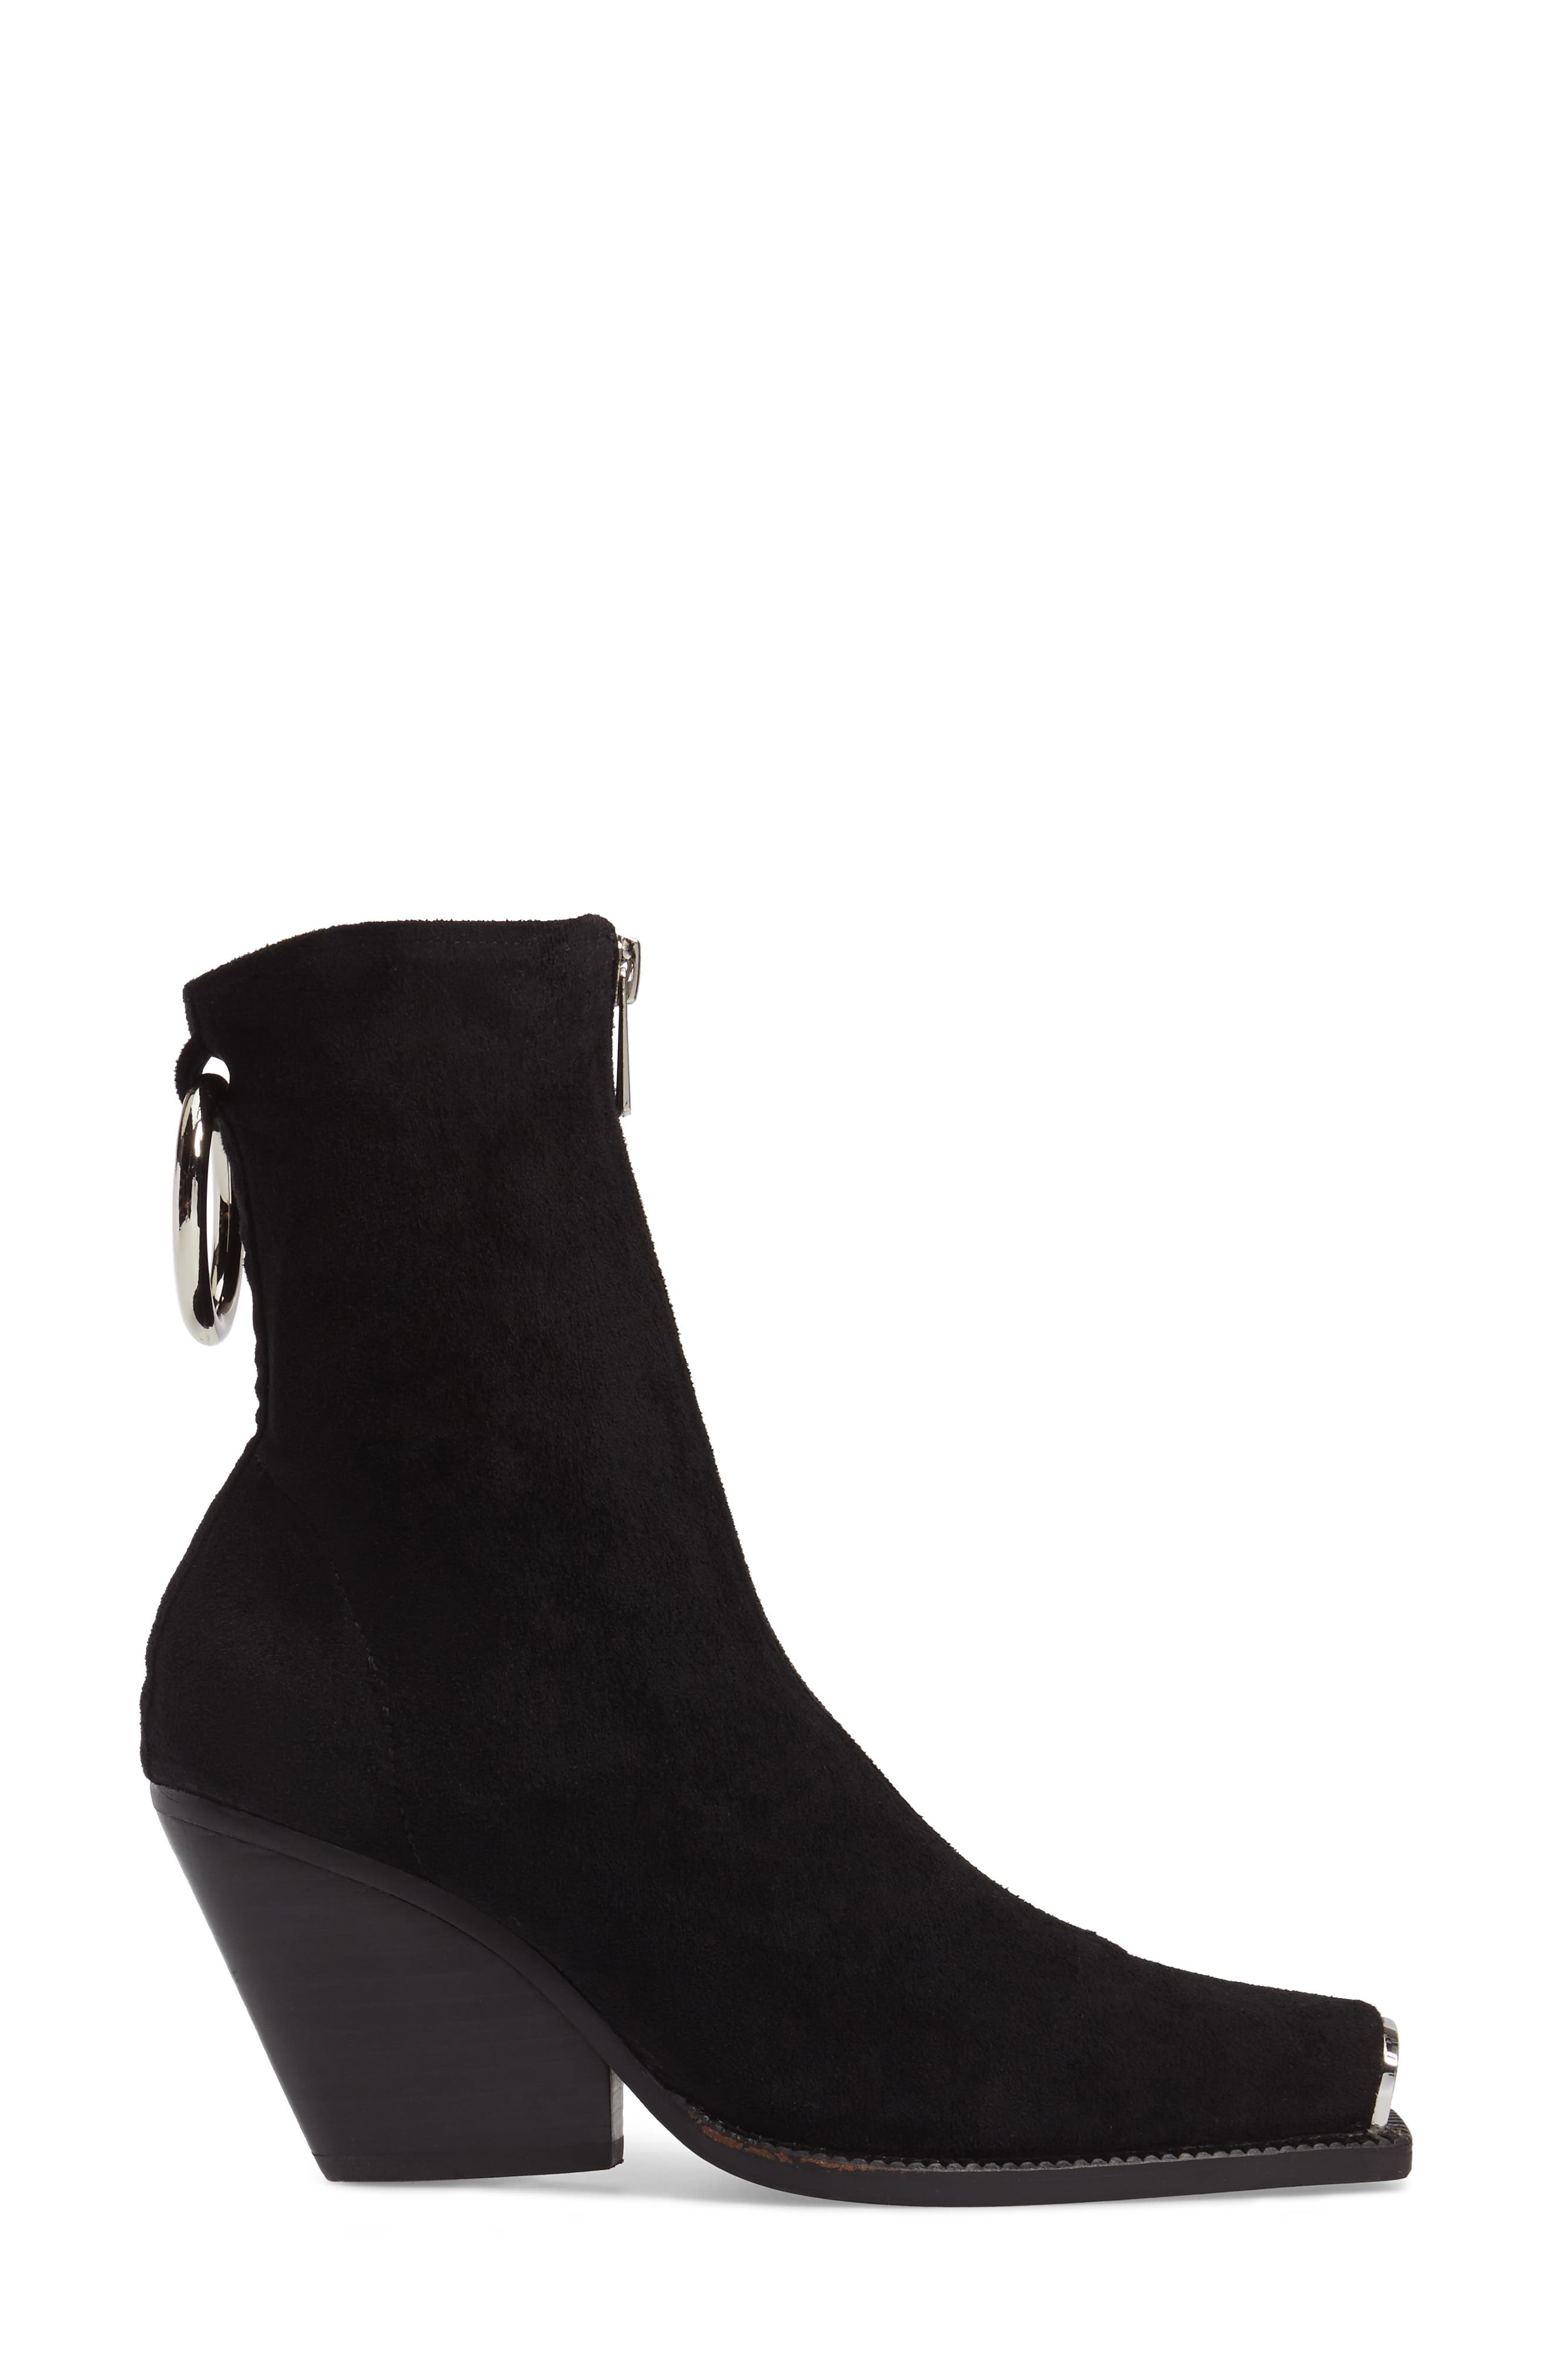 Eubank Stretch Bootie,                             Alternate thumbnail 3, color,                             Black Stretch Suede